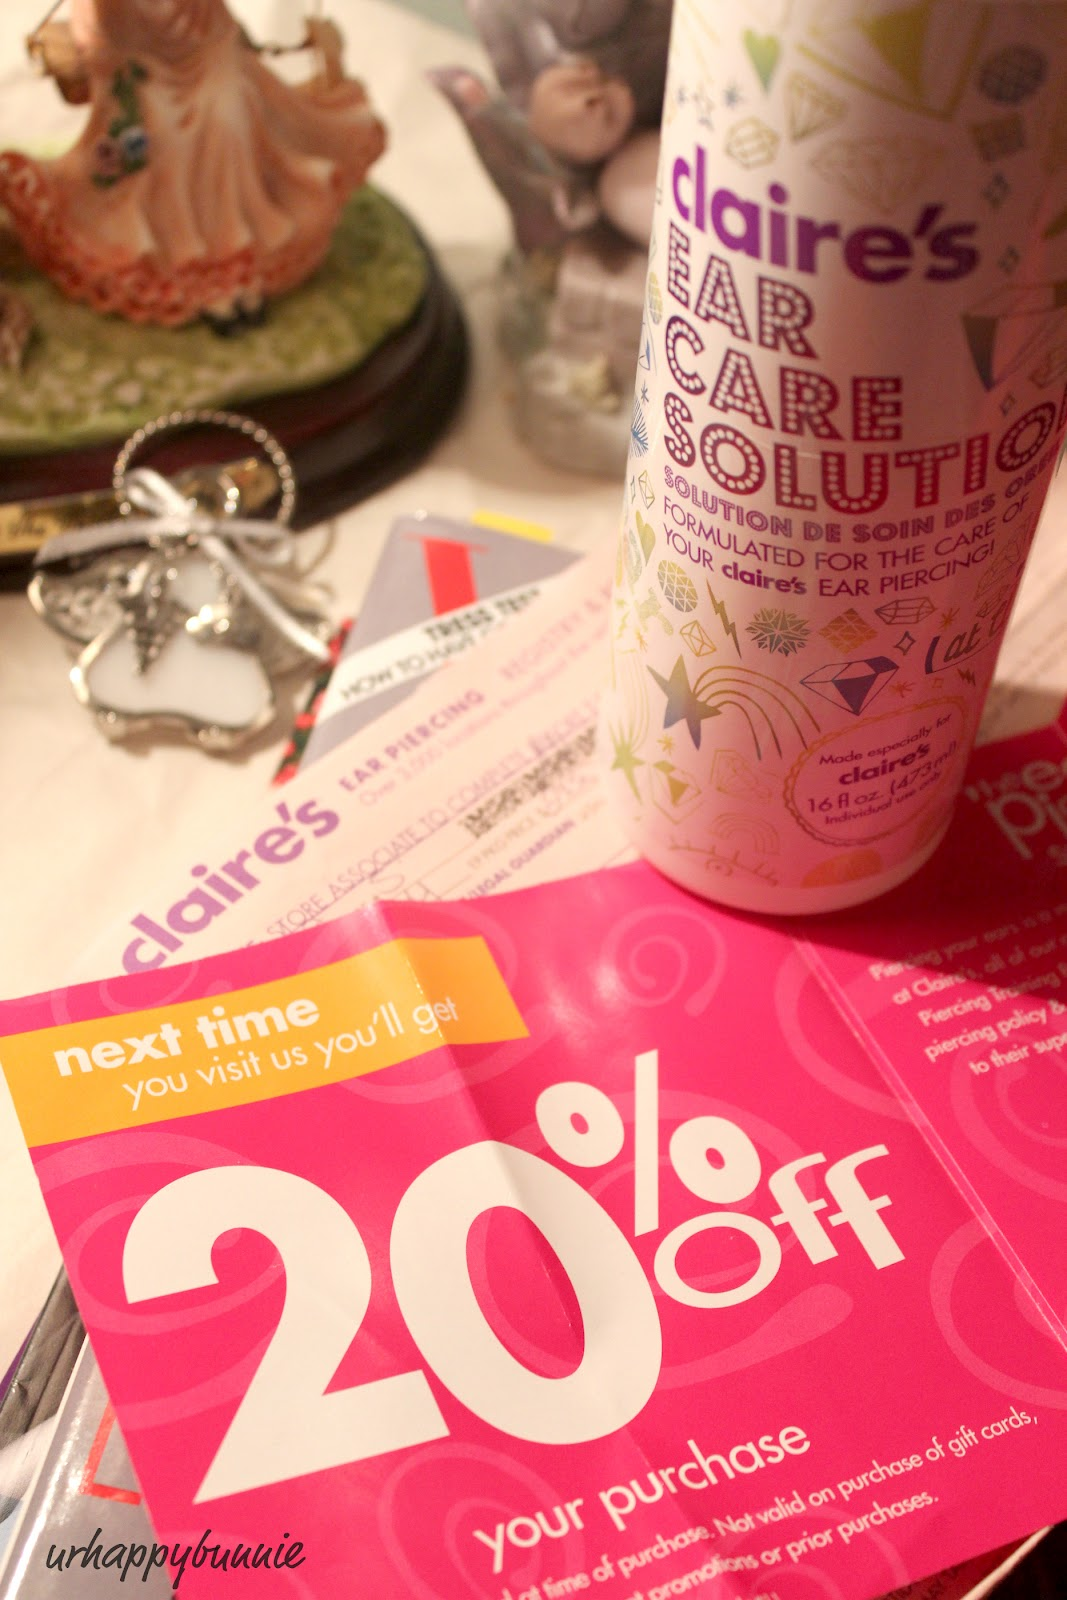 Claire's ear piercing coupons